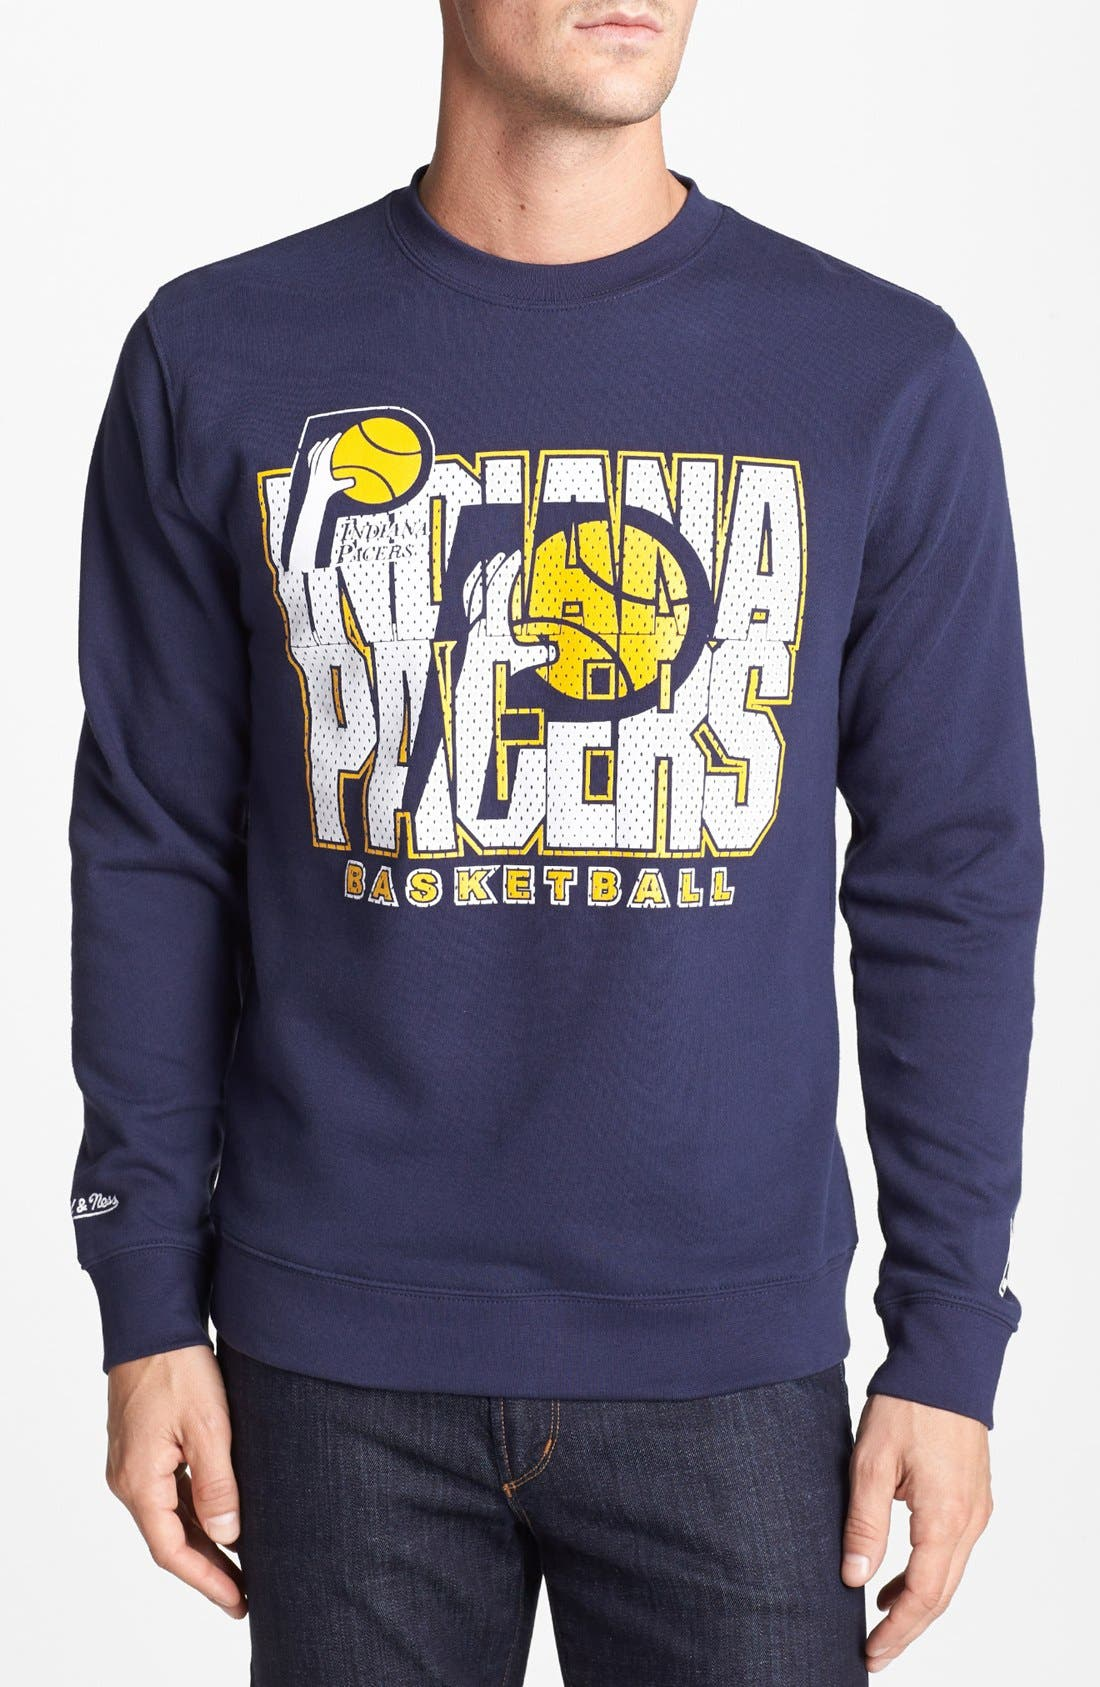 Main Image - Mitchell & Ness 'Indiana Pacers - Technical Foul' Sweatshirt